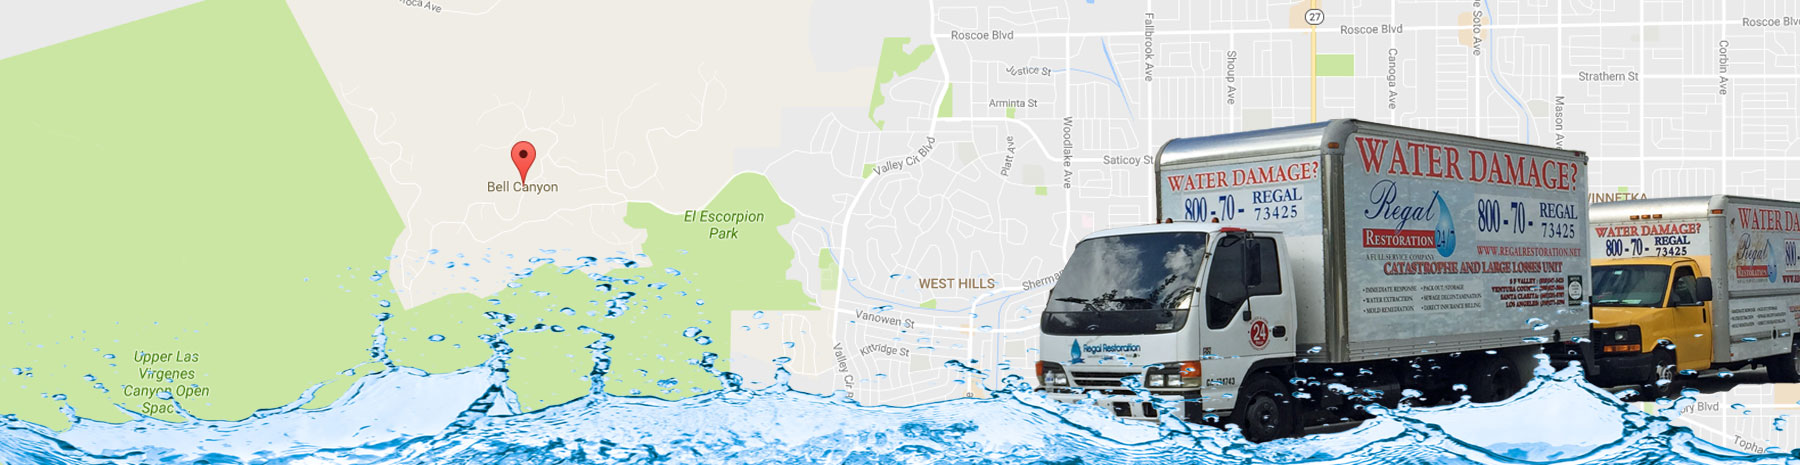 Water Damage Removal Bell Canyon, California